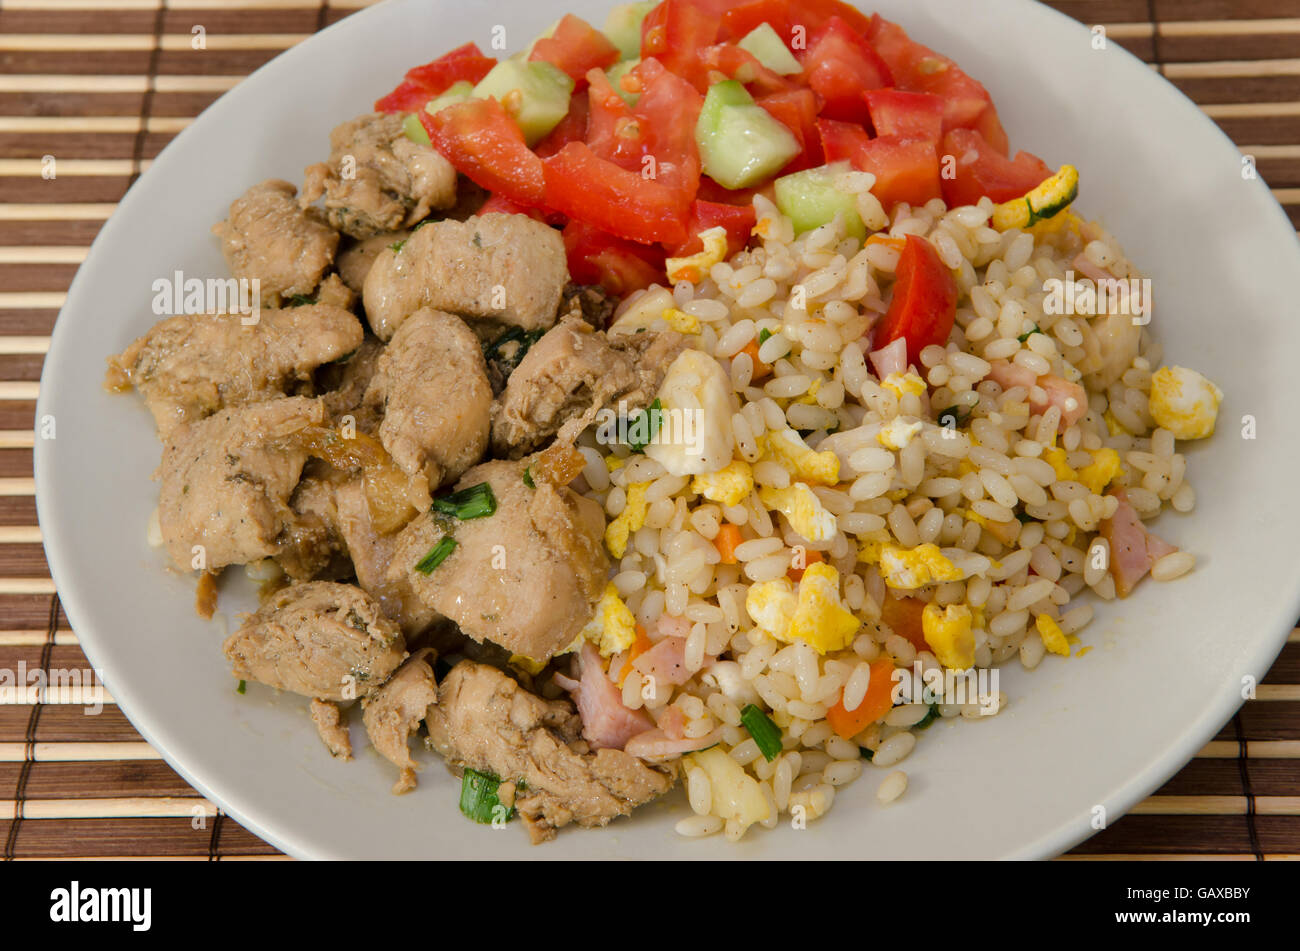 pork with egg fried rice and mixed salad on a plate Stock Photo